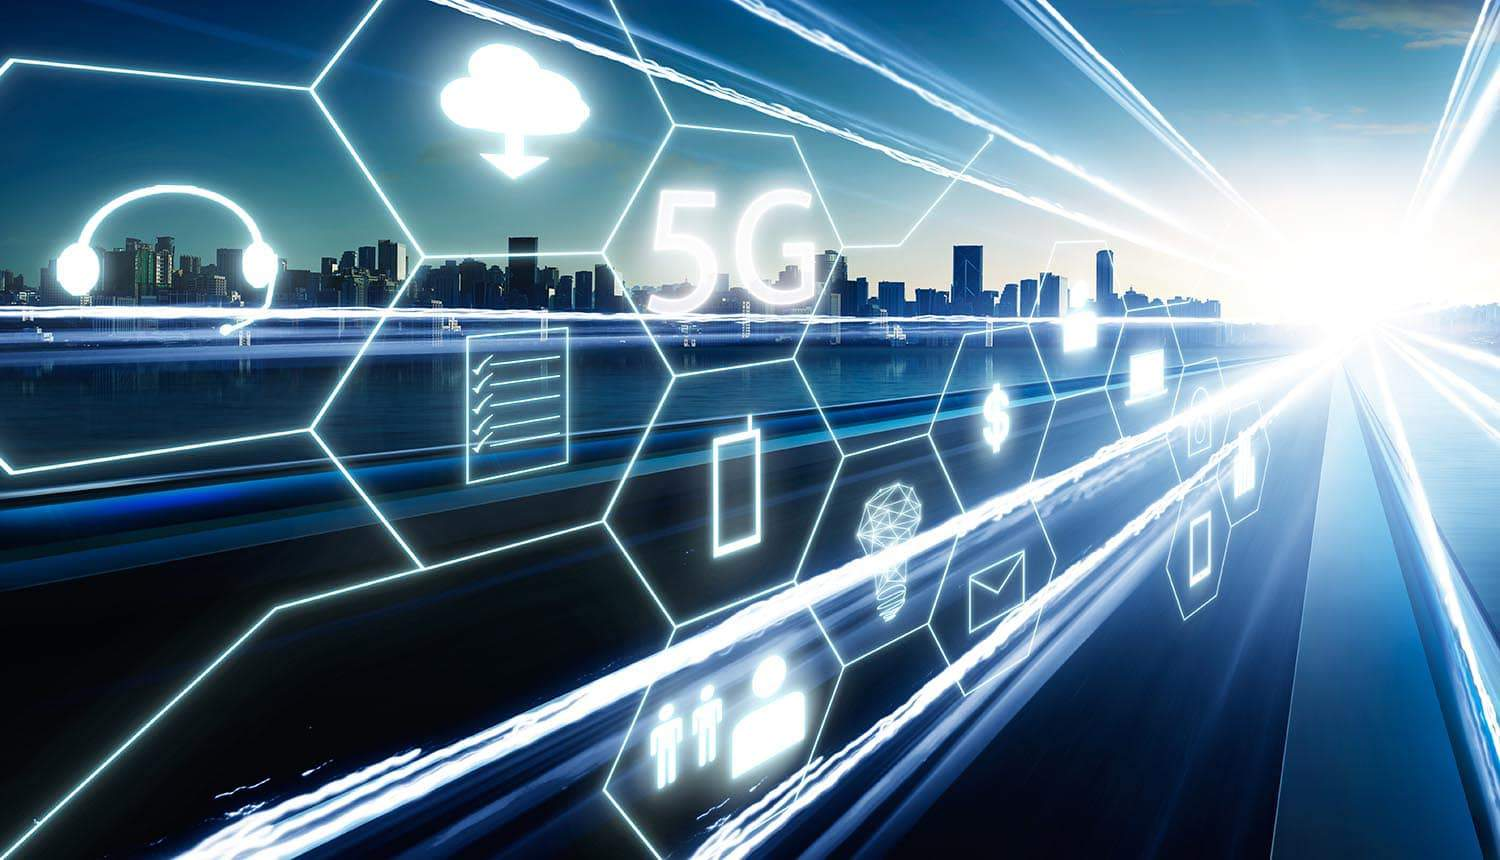 5G icon with other virtual technology icons showing how 5G networks can change an enterprise's security threat model